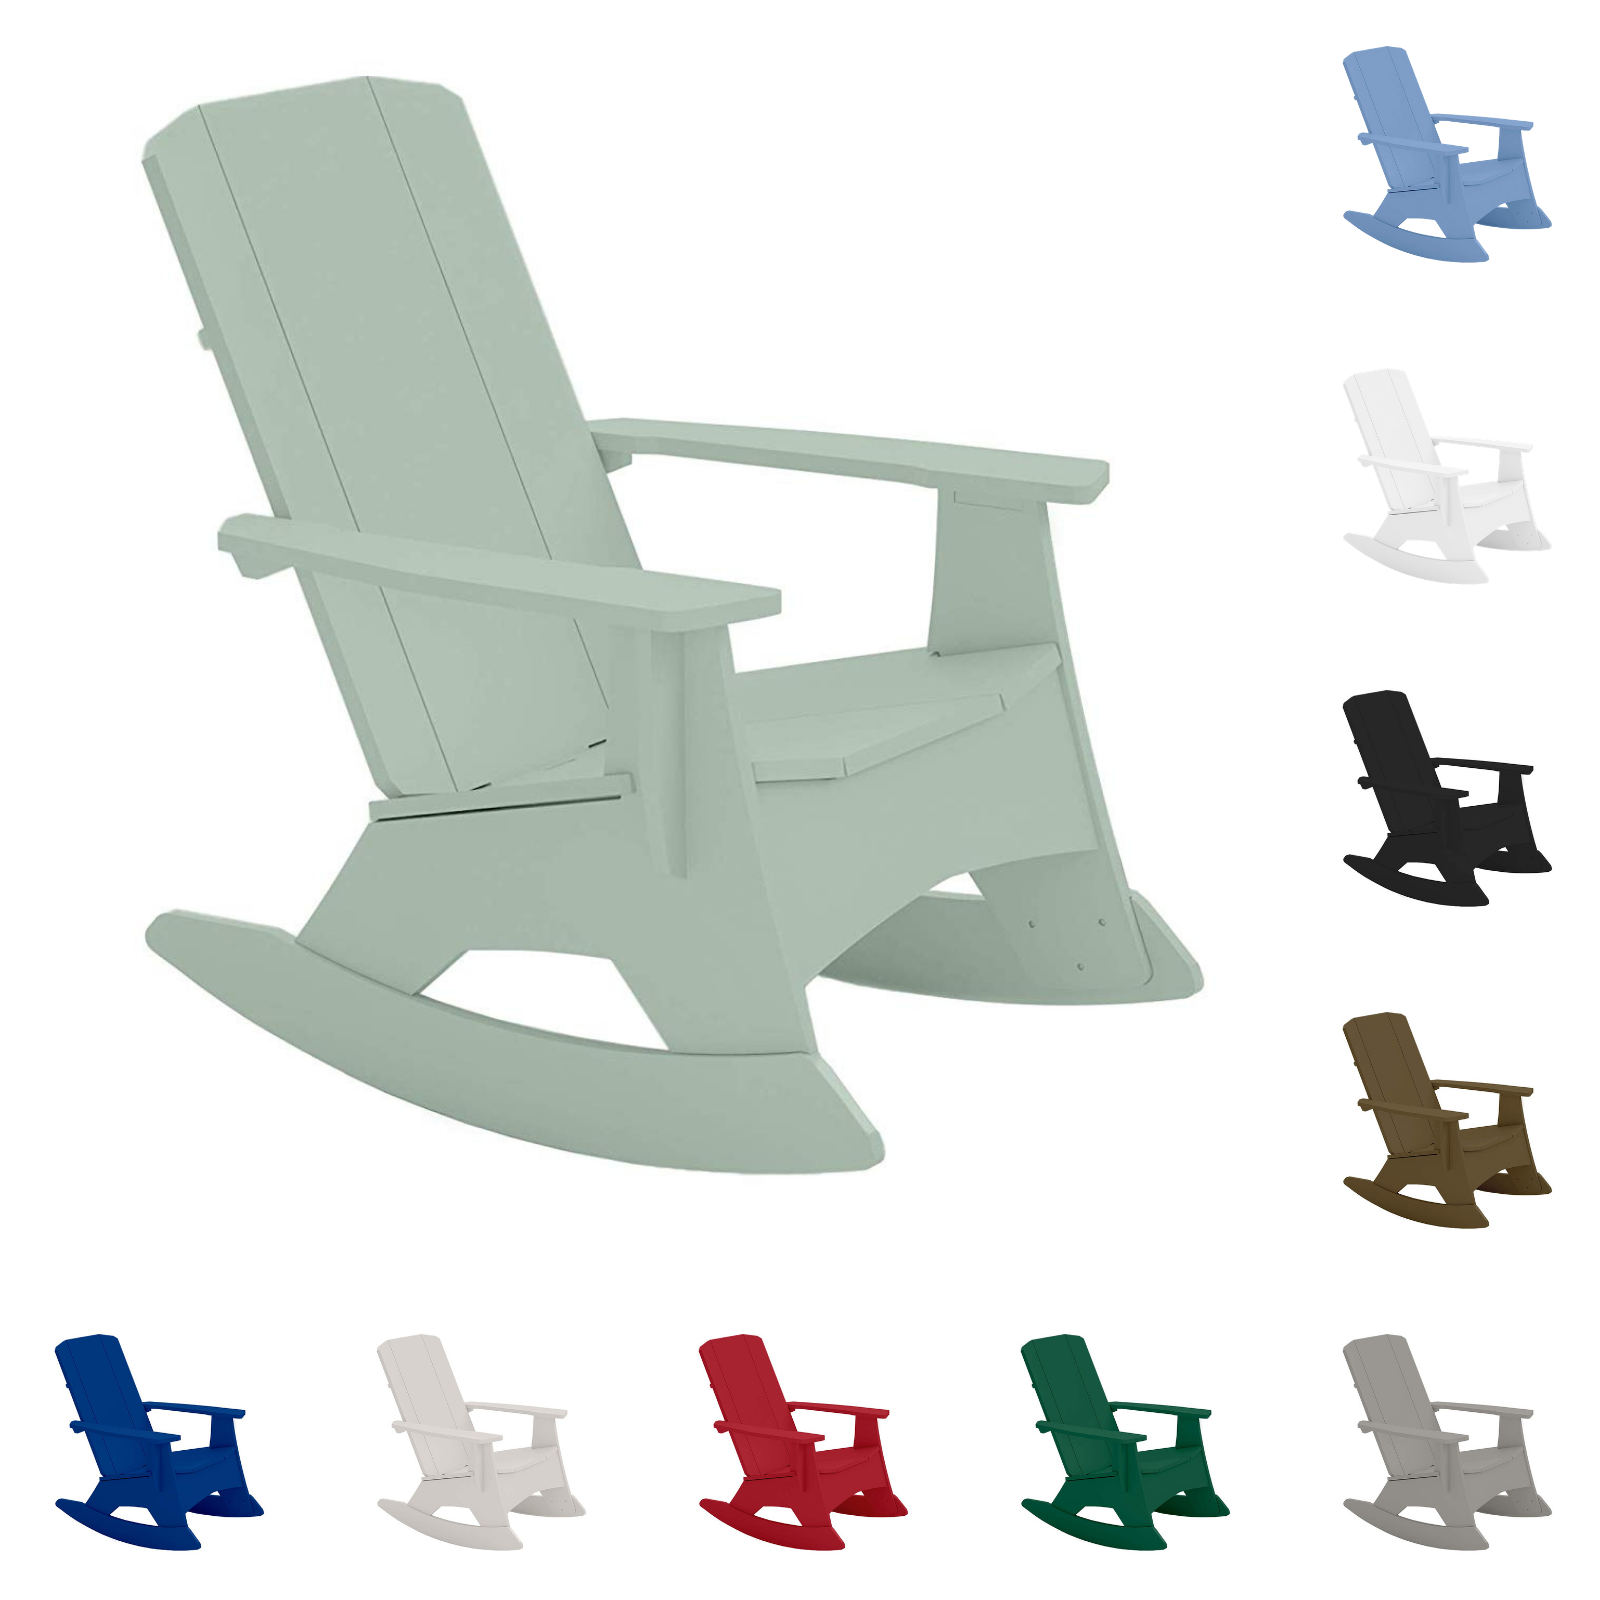 The Mainstay Adirondack rocker is a customer favorite because of its durability and comfort